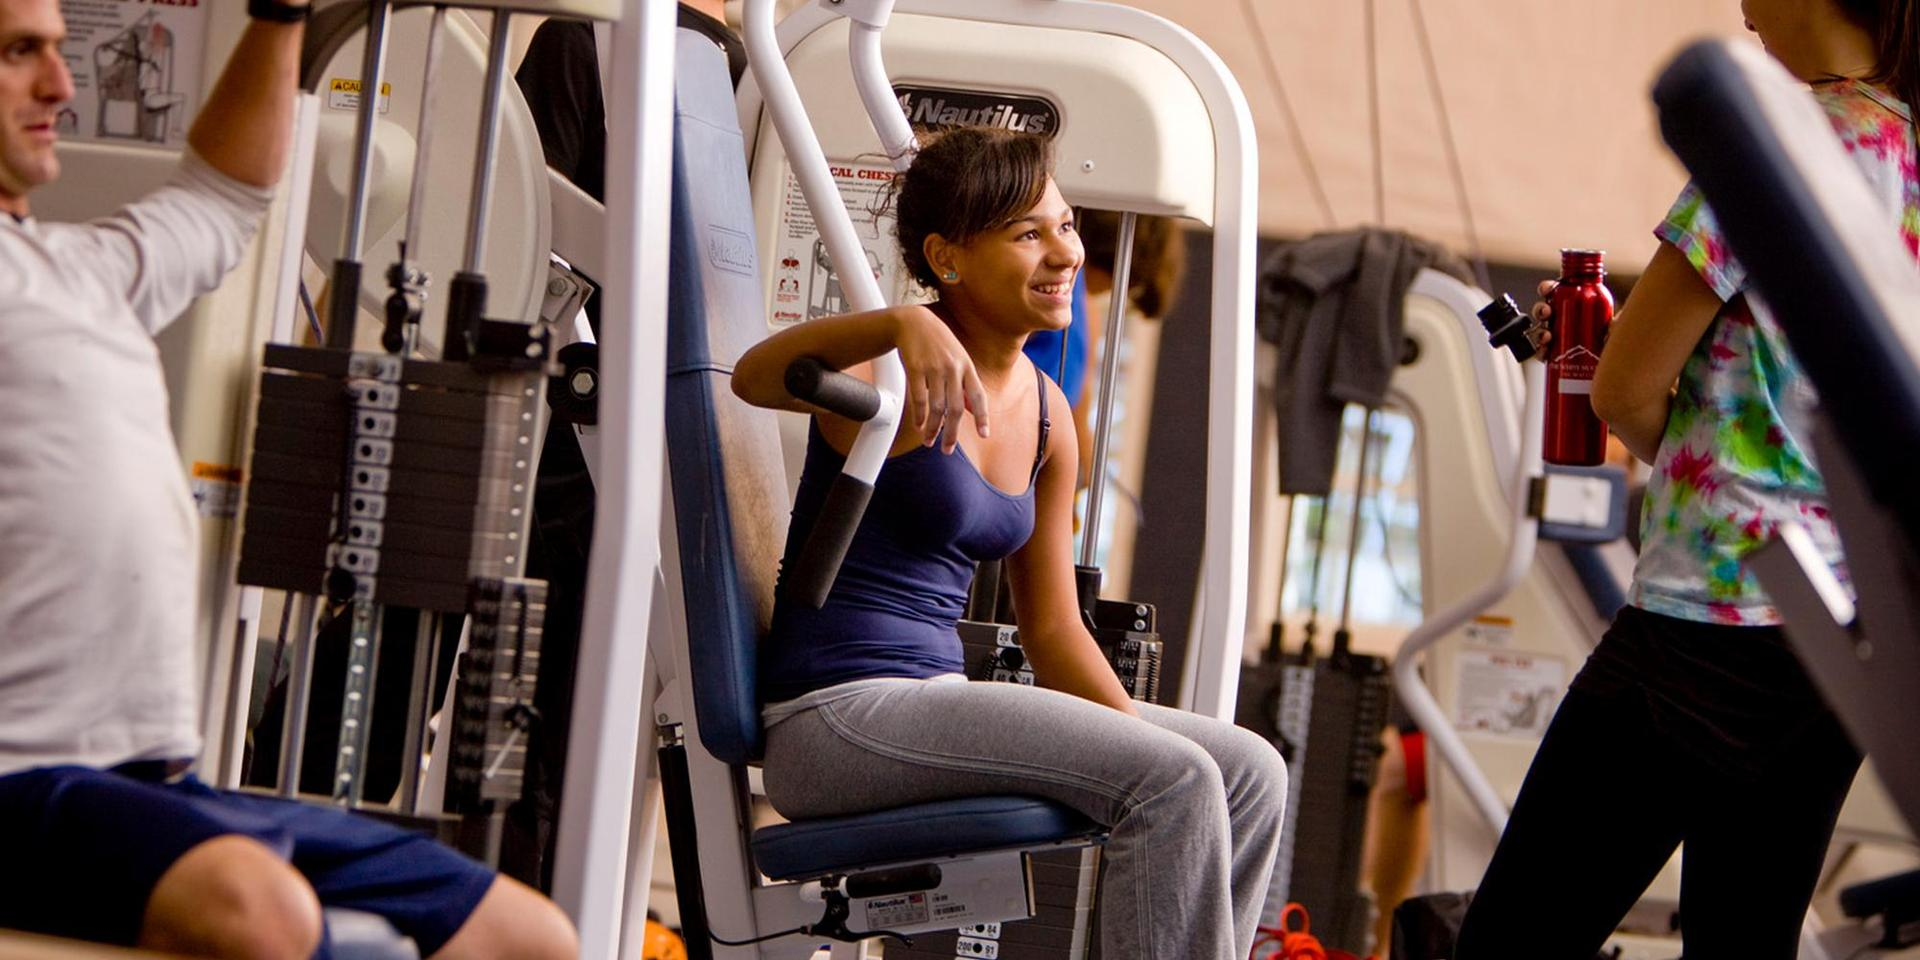 Community members using the exercise machines in the gym.